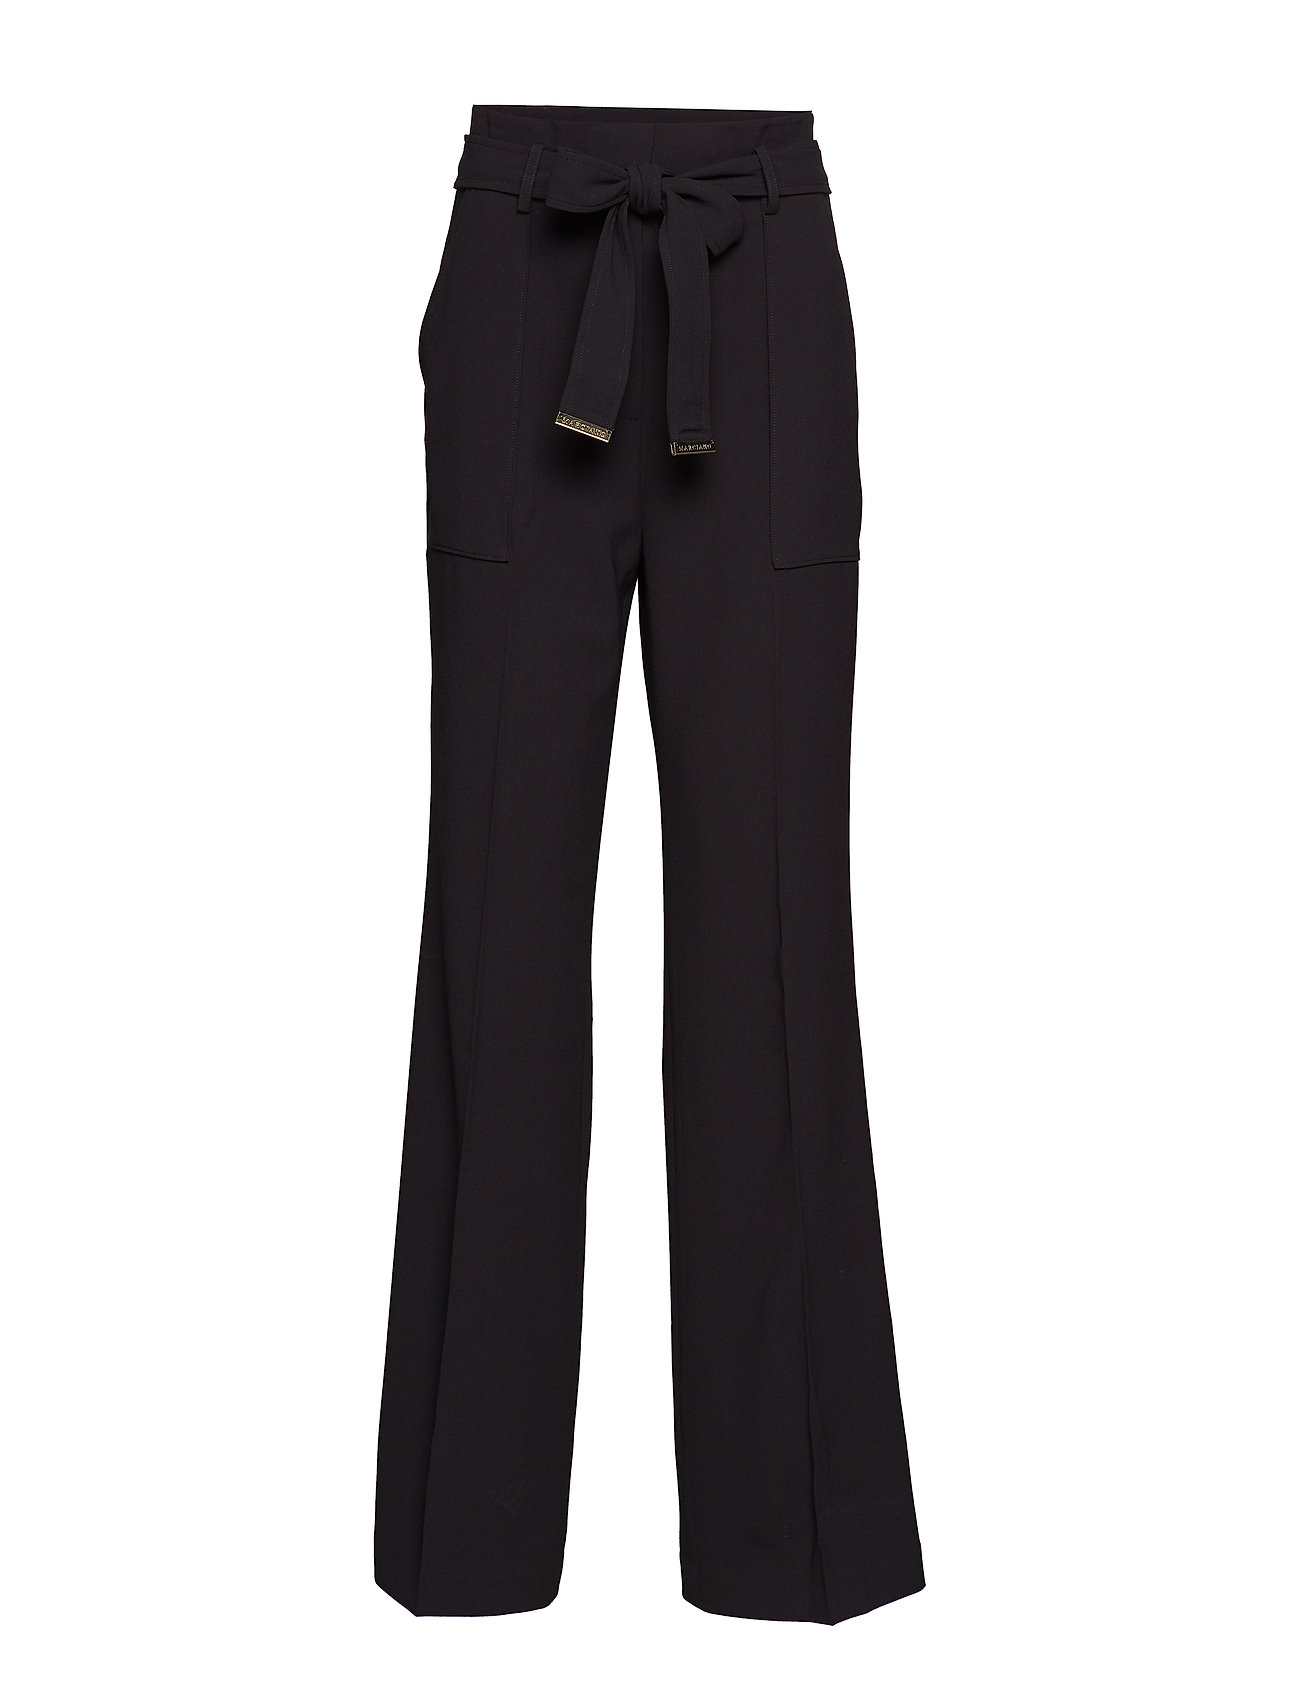 Marciano by GUESS ALY PANT - JET BLACK A996